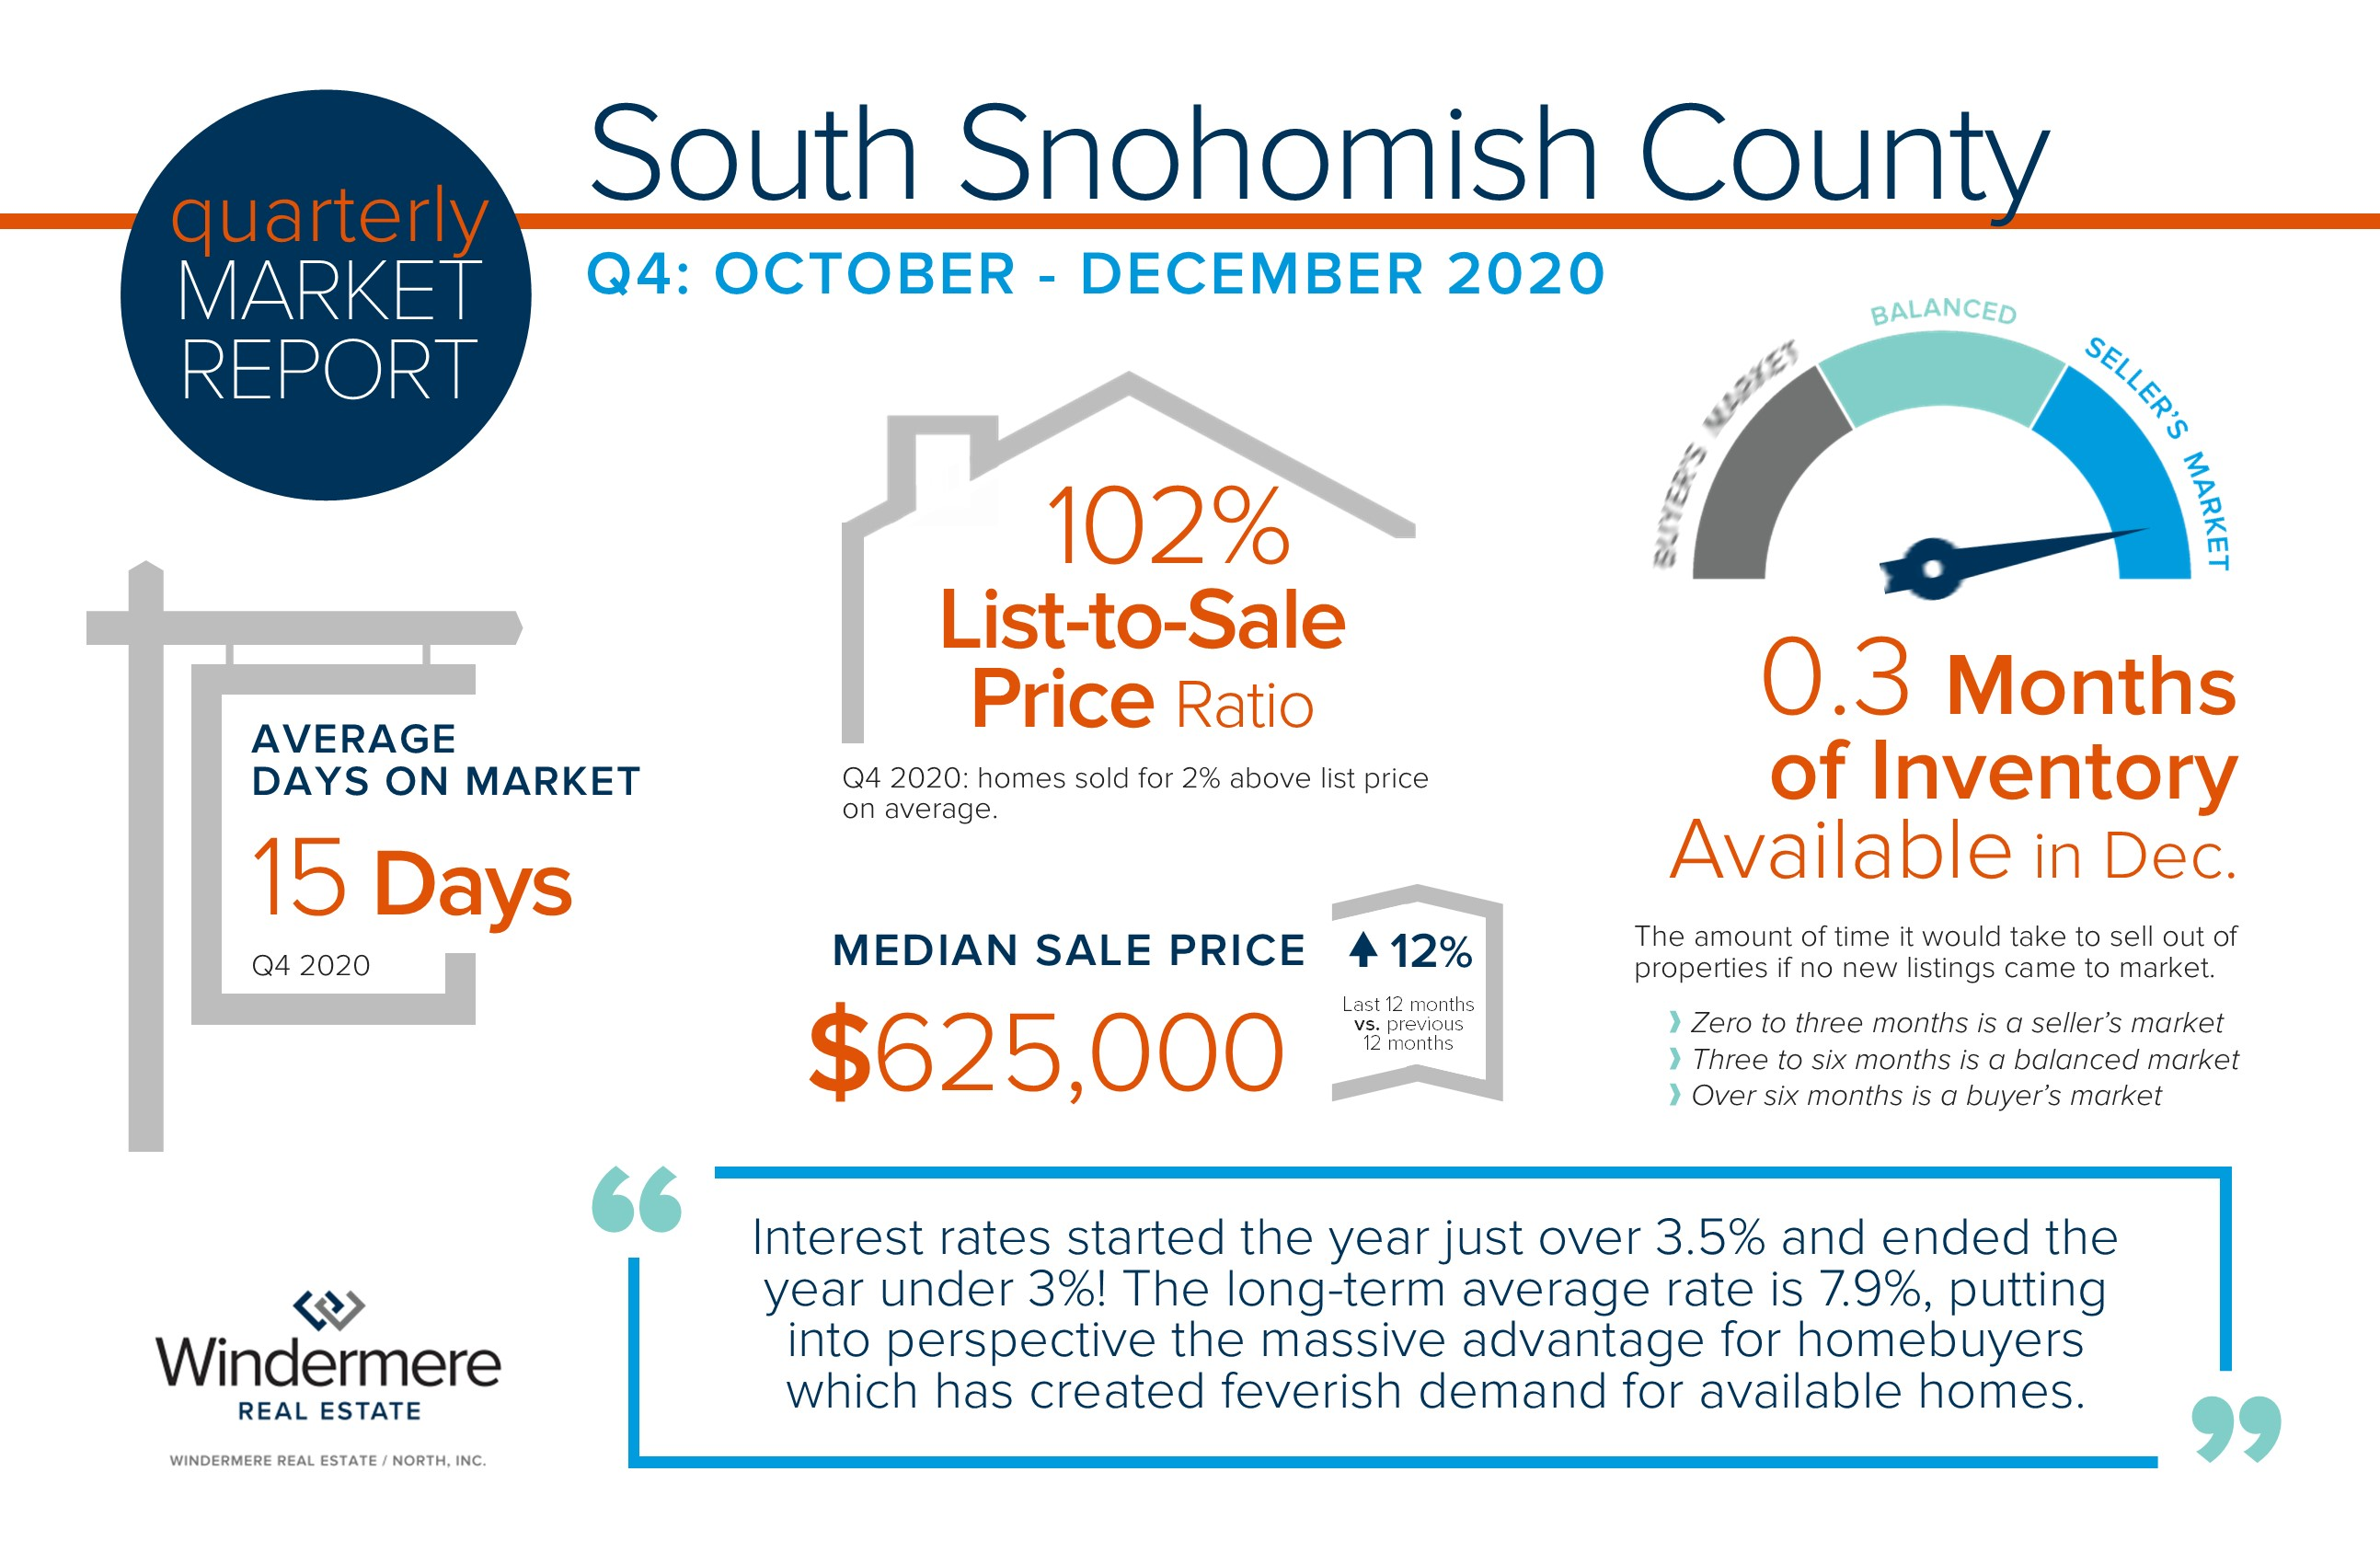 South Snohomish County Quarterly Market Trends – Q4 2020